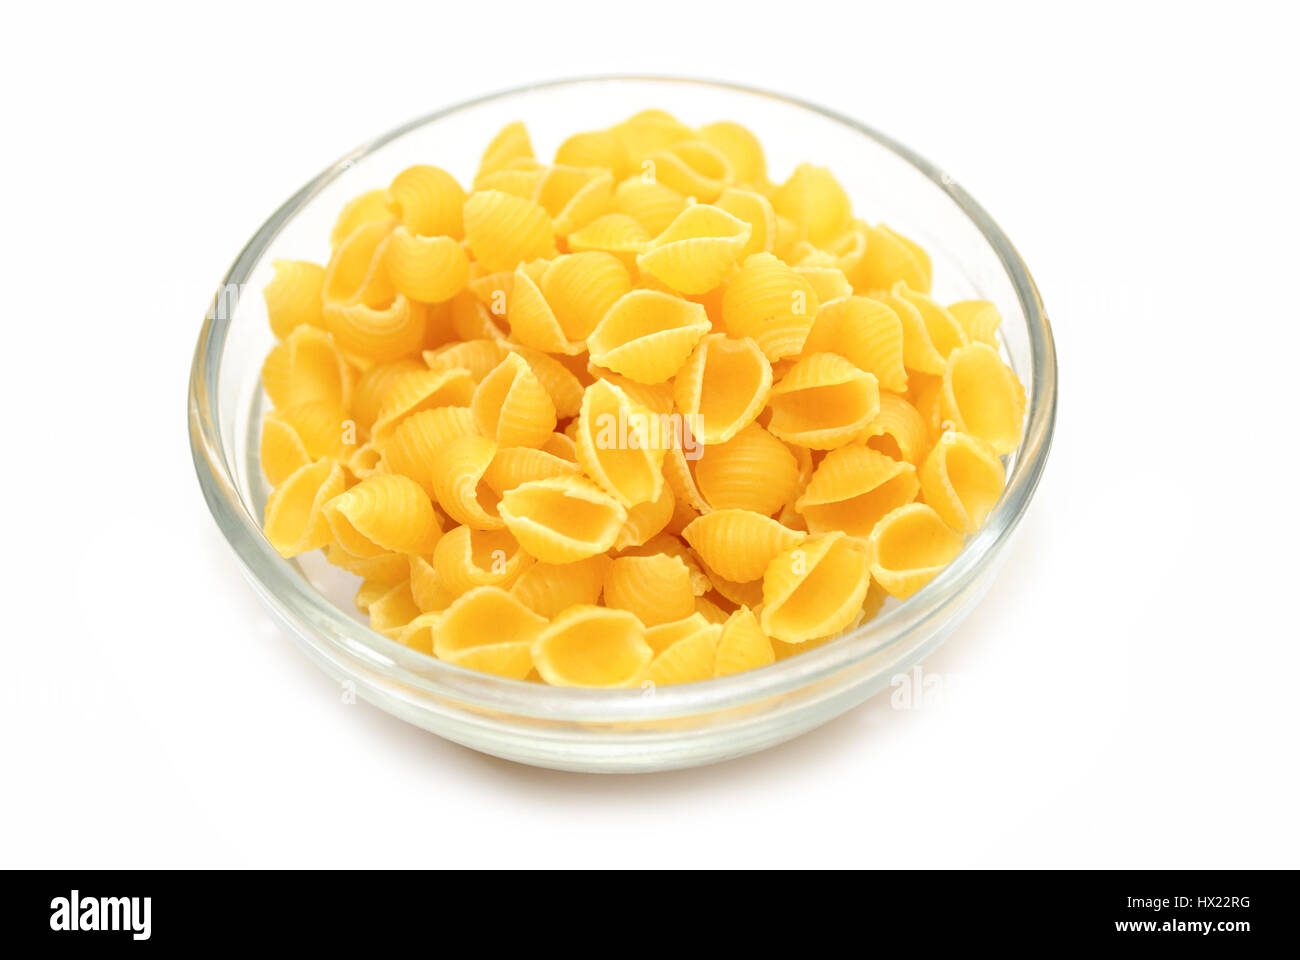 Bowl of Dried Shell Pasta - Stock Image